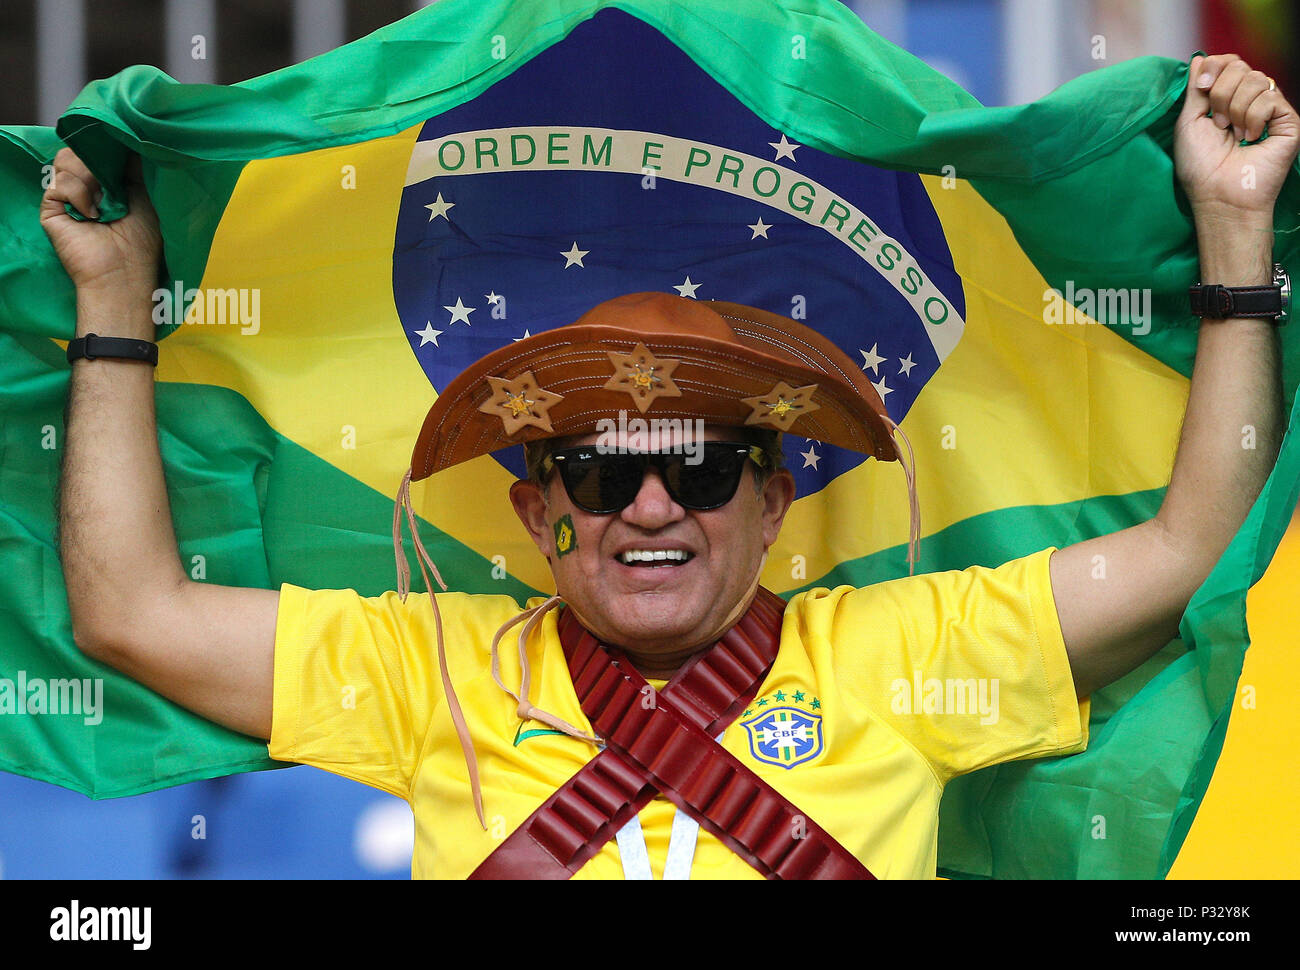 Rostov Do Don, Russia, 17 June 2018.  Brazil fan before the match between Brazil and Switzerland valid for the 2018 World Cup held at the Rostov Arena in Rostov-on-Don, Russia. (Photo: Rodolfo Buhrer/La Imagem/Fotoarena) Credit: Foto Arena LTDA/Alamy Live News Credit: Foto Arena LTDA/Alamy Live News Stock Photo